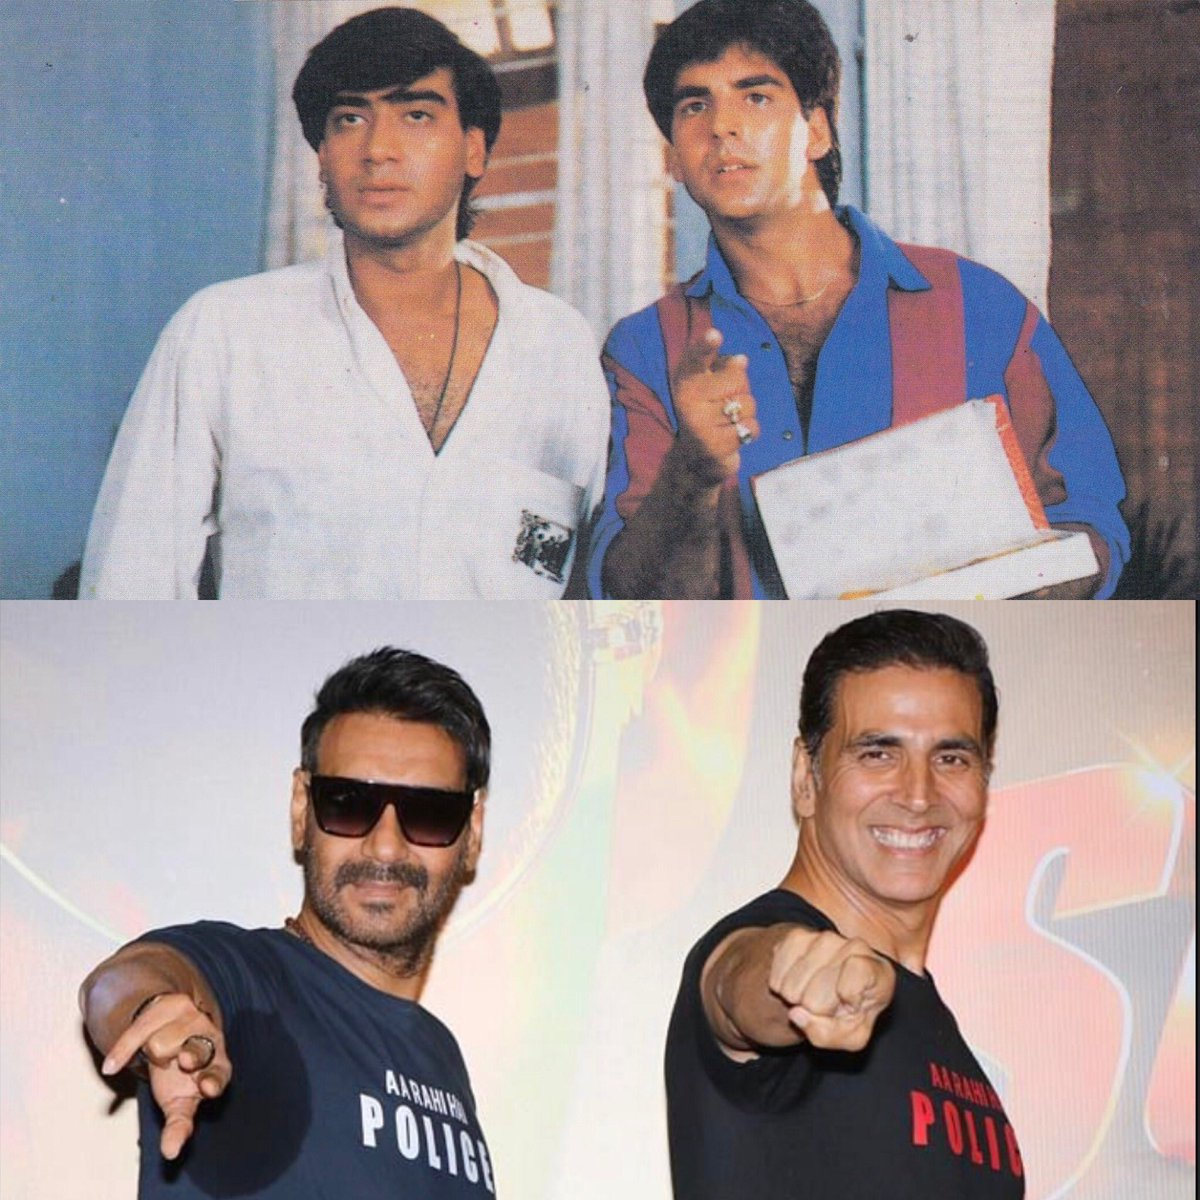 From then to now, you've been an amazing co-star and part of my journey. Wishing you a very happy birthday @ajaydevgn. May you keep growing from strength to strength. Much love 🤗 https://t.co/Ihx1NmQTWS